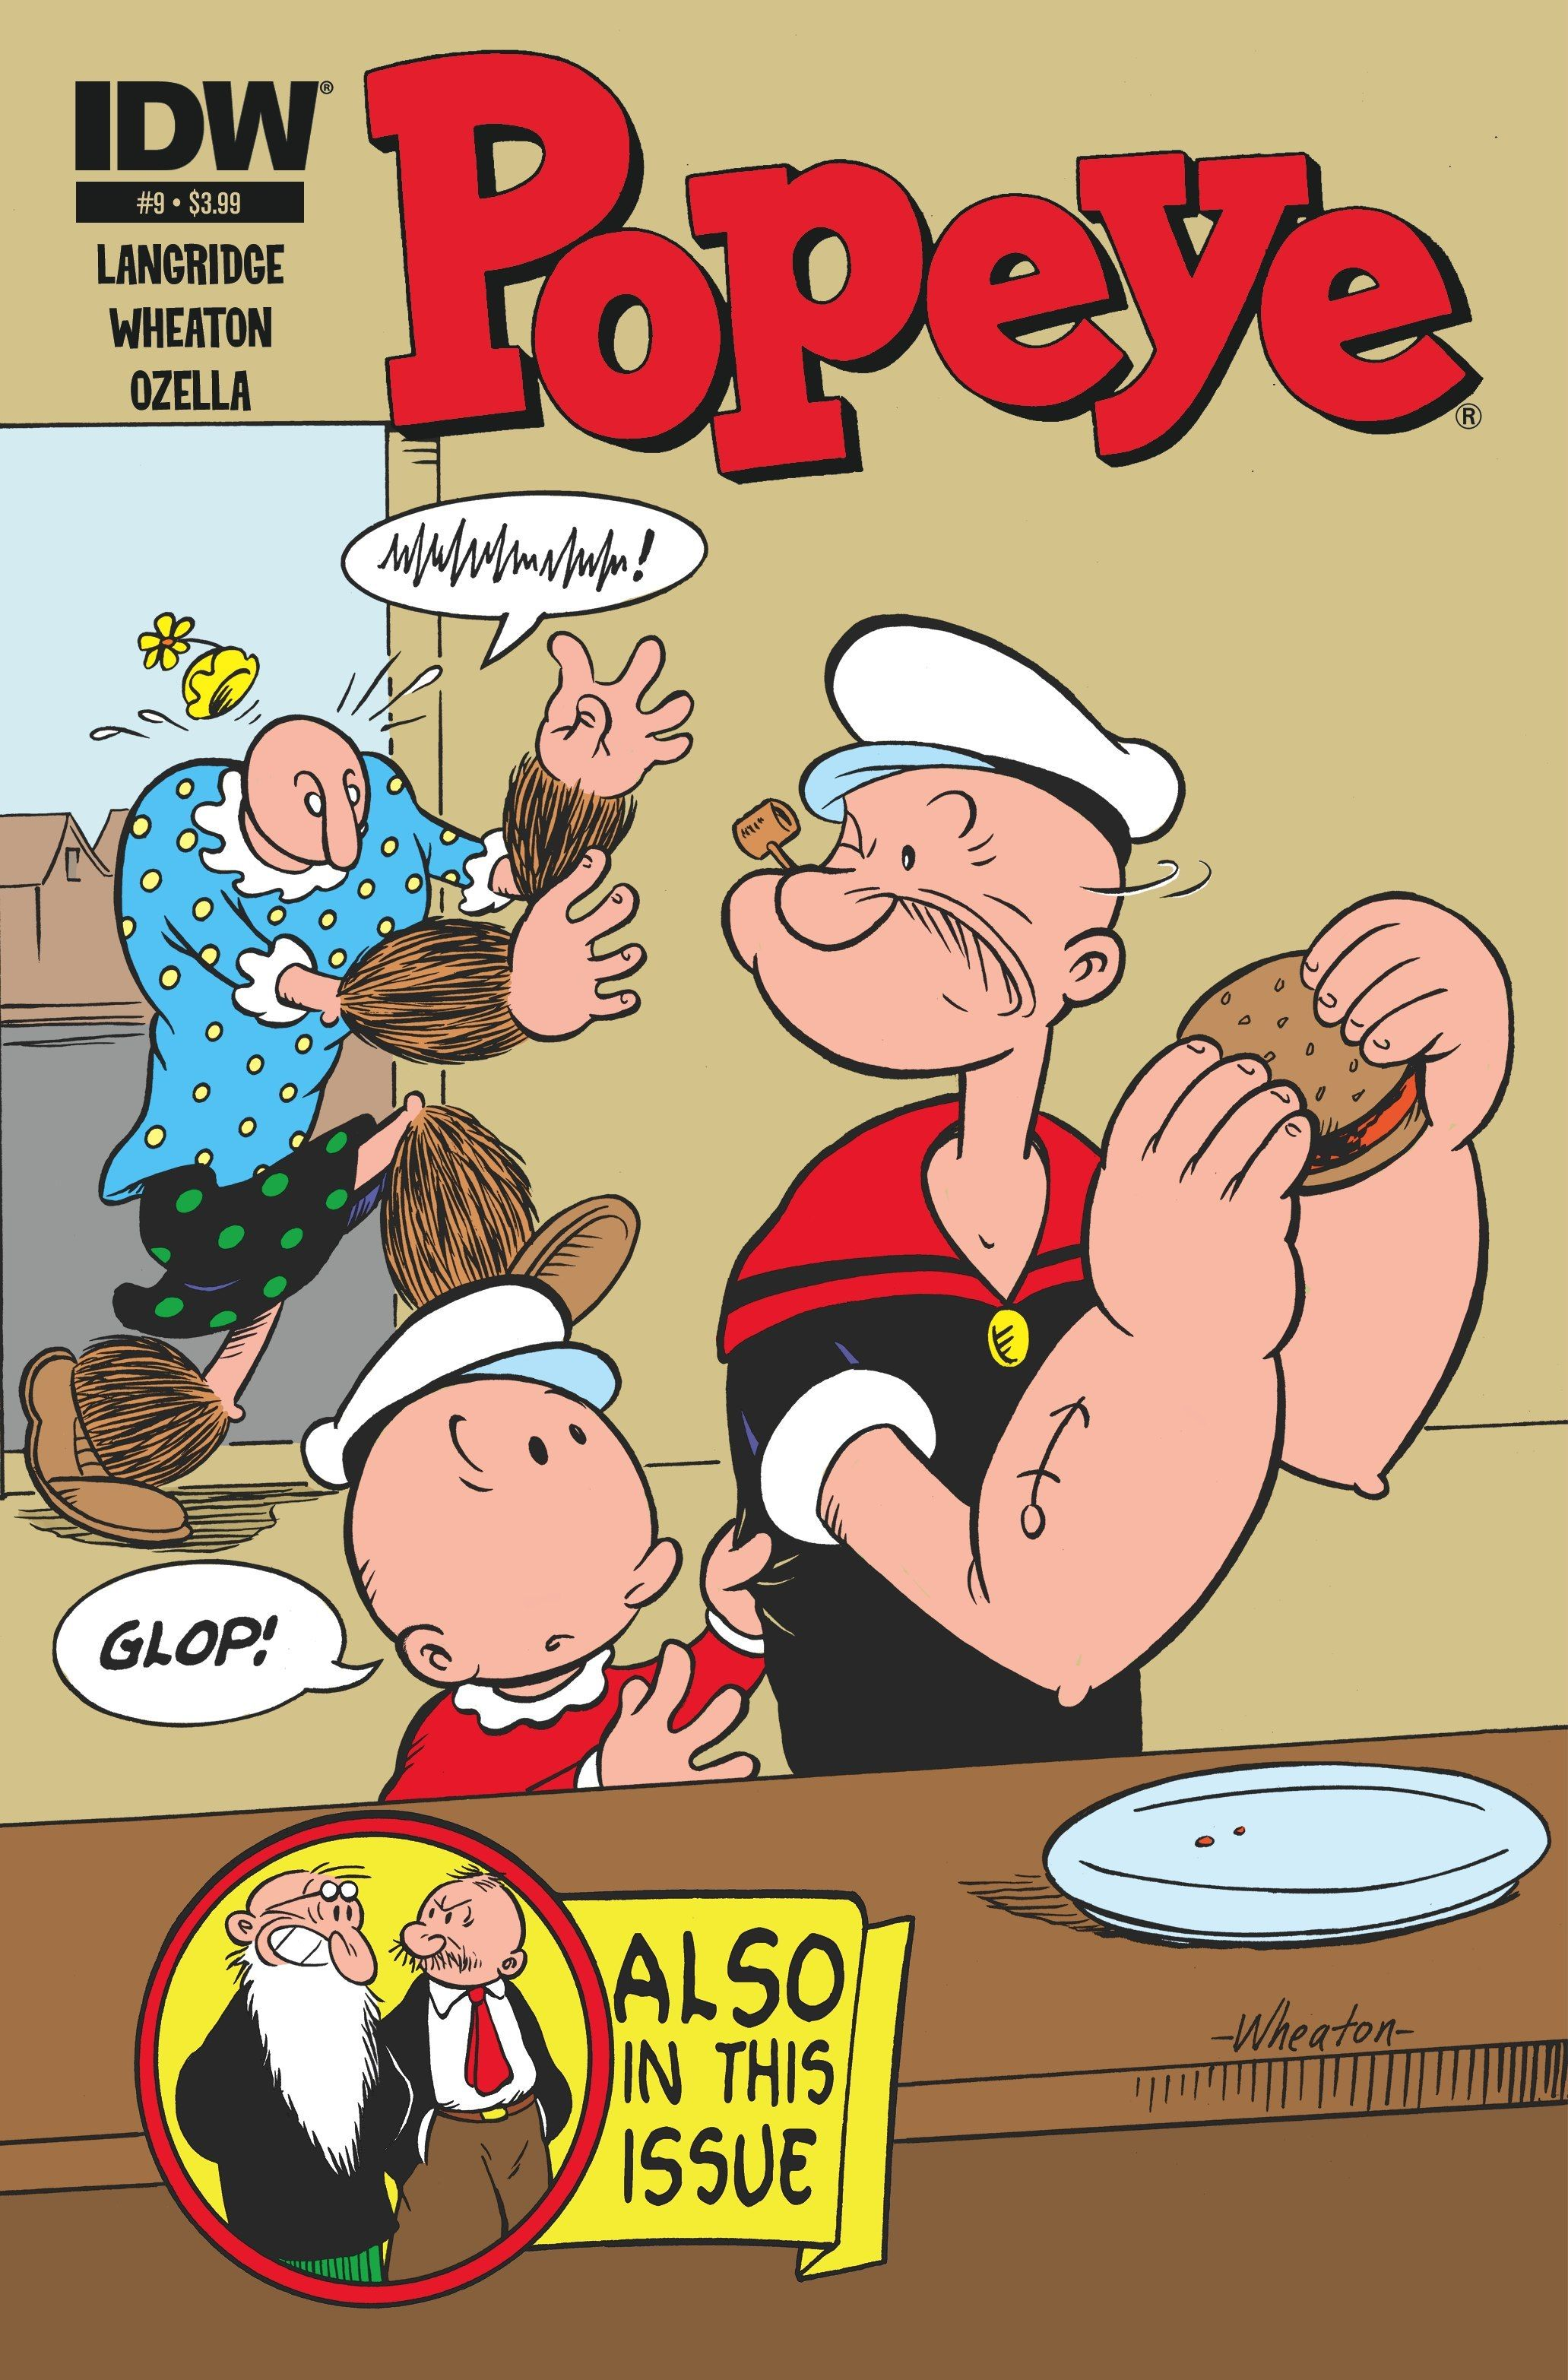 Wallpaper download comedy - Pics Popeye Background For Free Image Wallpaper Download Anime Cartoon Wallpaper